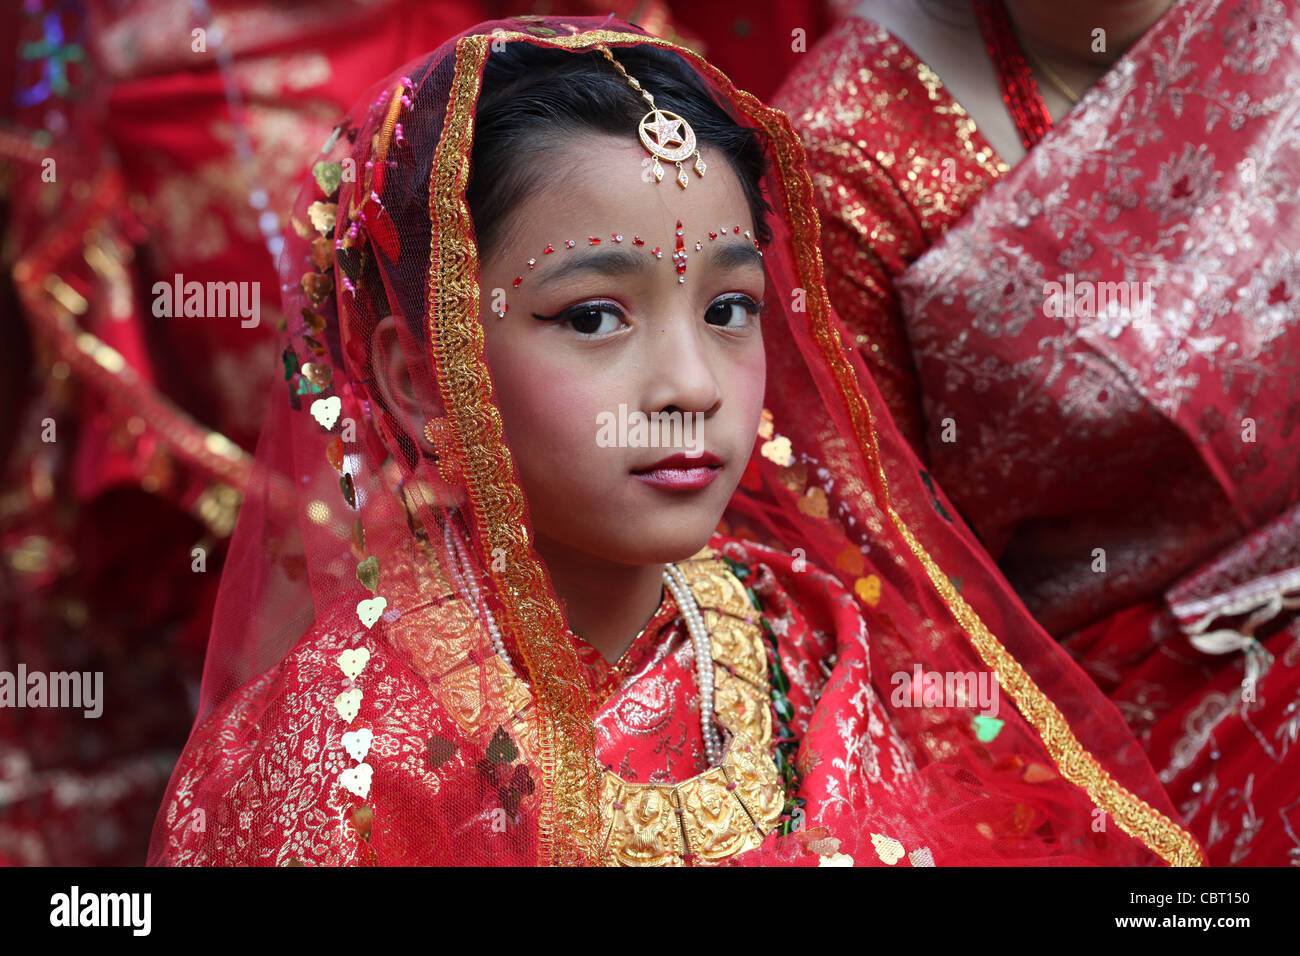 Traditional Ceremonial Hindu Rite of passage for young Nepali Girl - Stock Image